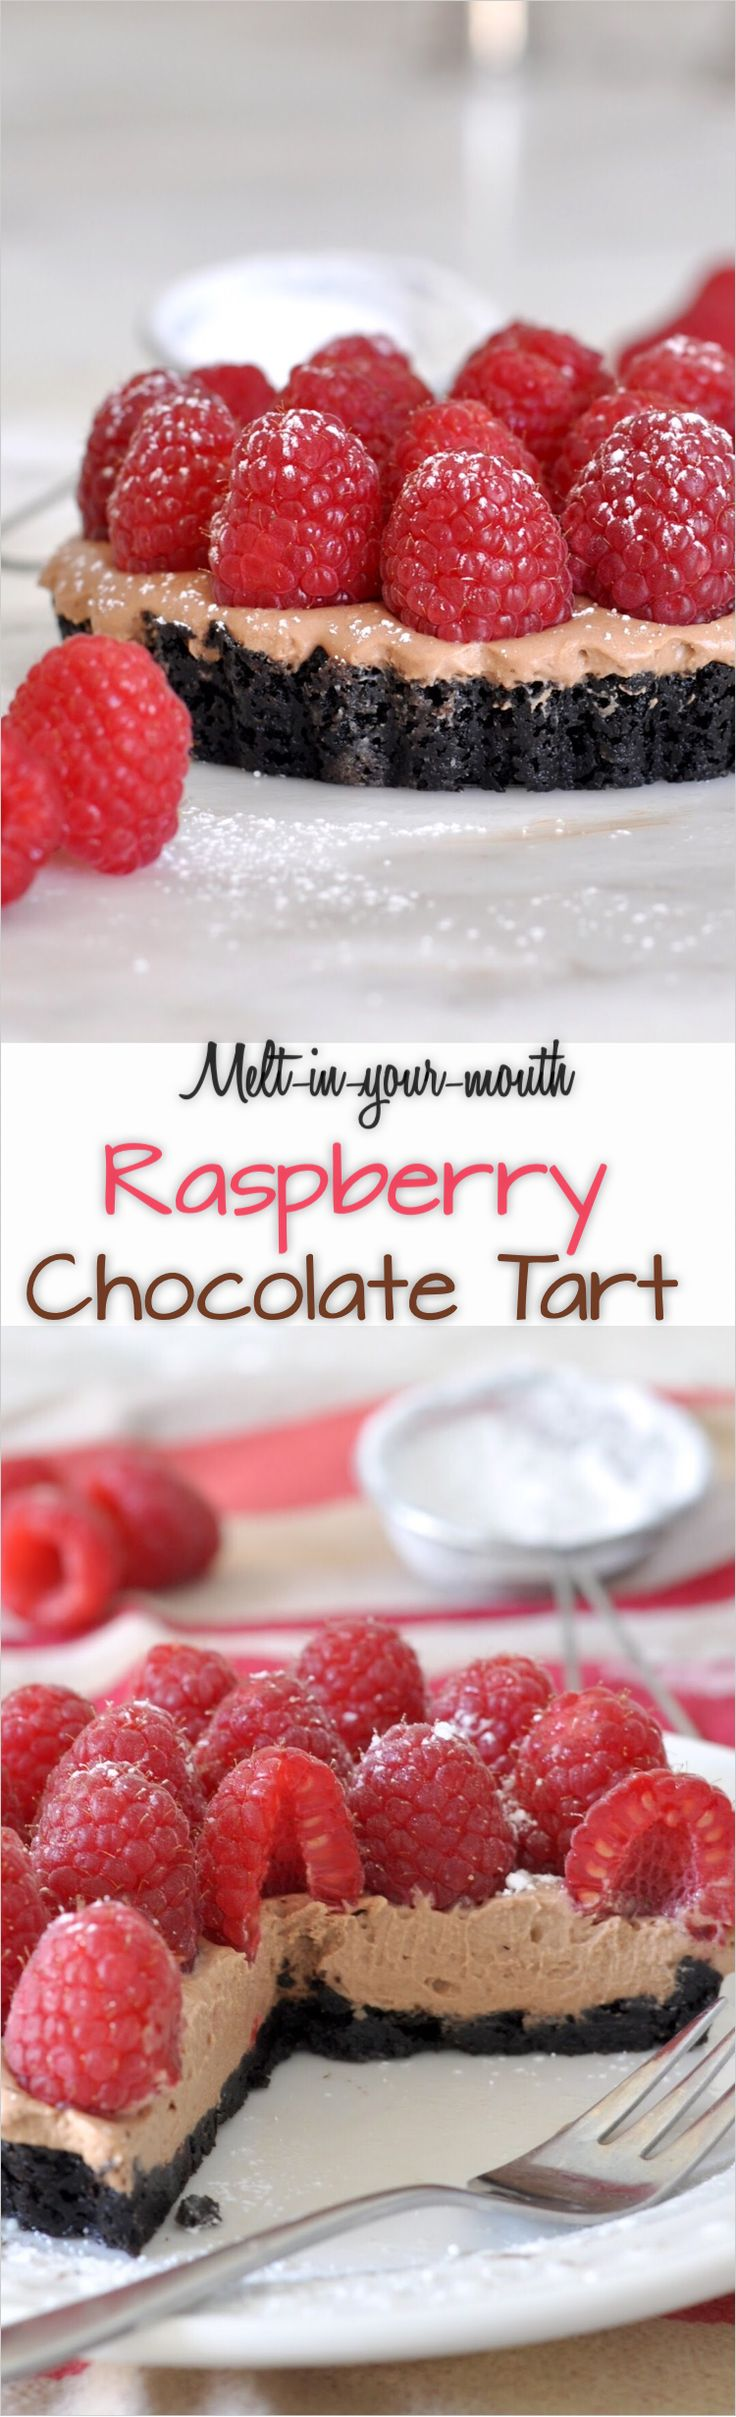 An Elegant Chocolate And Raspberry Cake Recipes - Elegant and easy to make double chocolate tarts topped with fresh and healthy raspberries